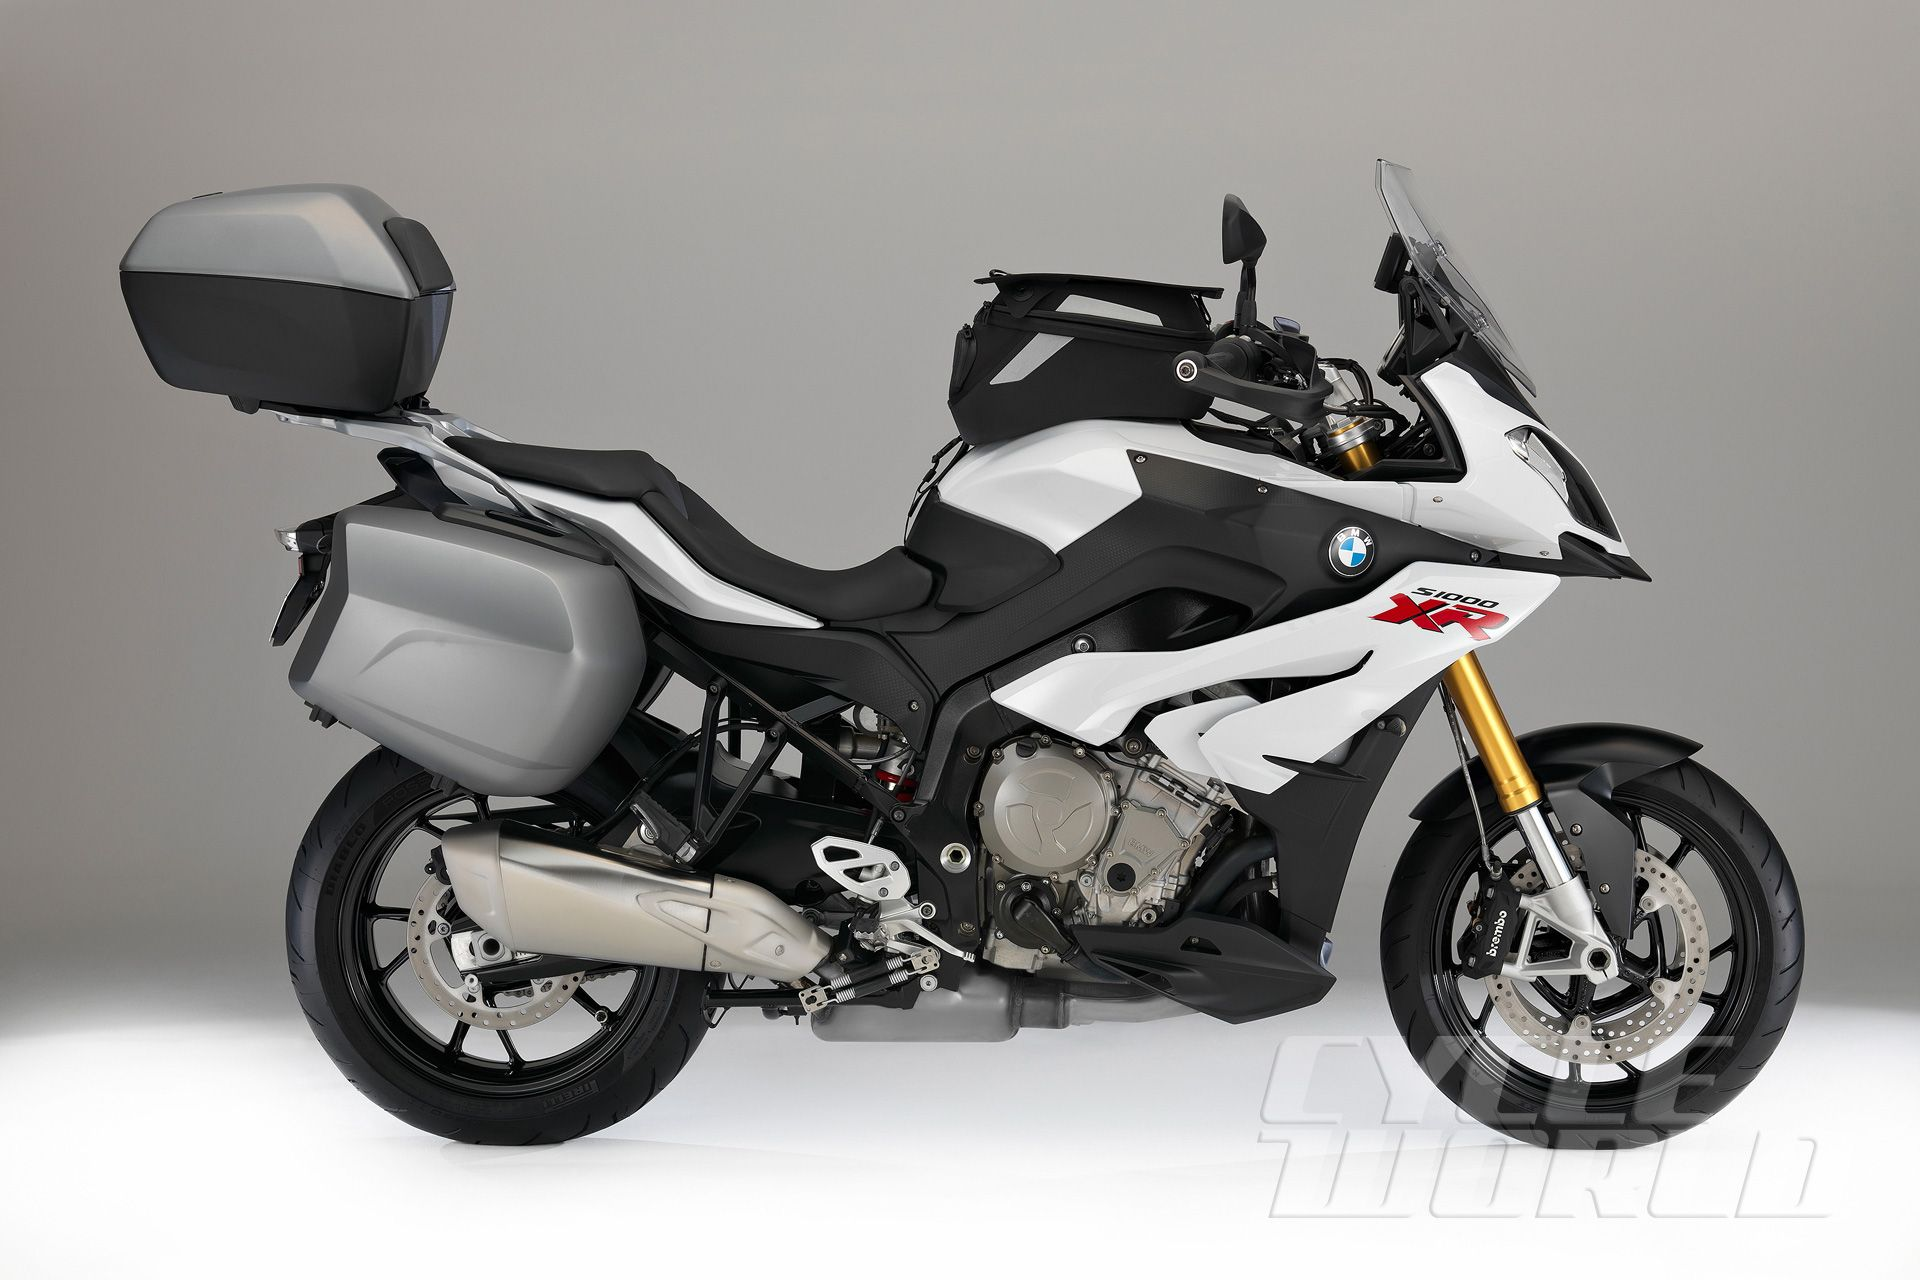 2016 Bmw S1000xr With Full Touring Pack Com Imagens